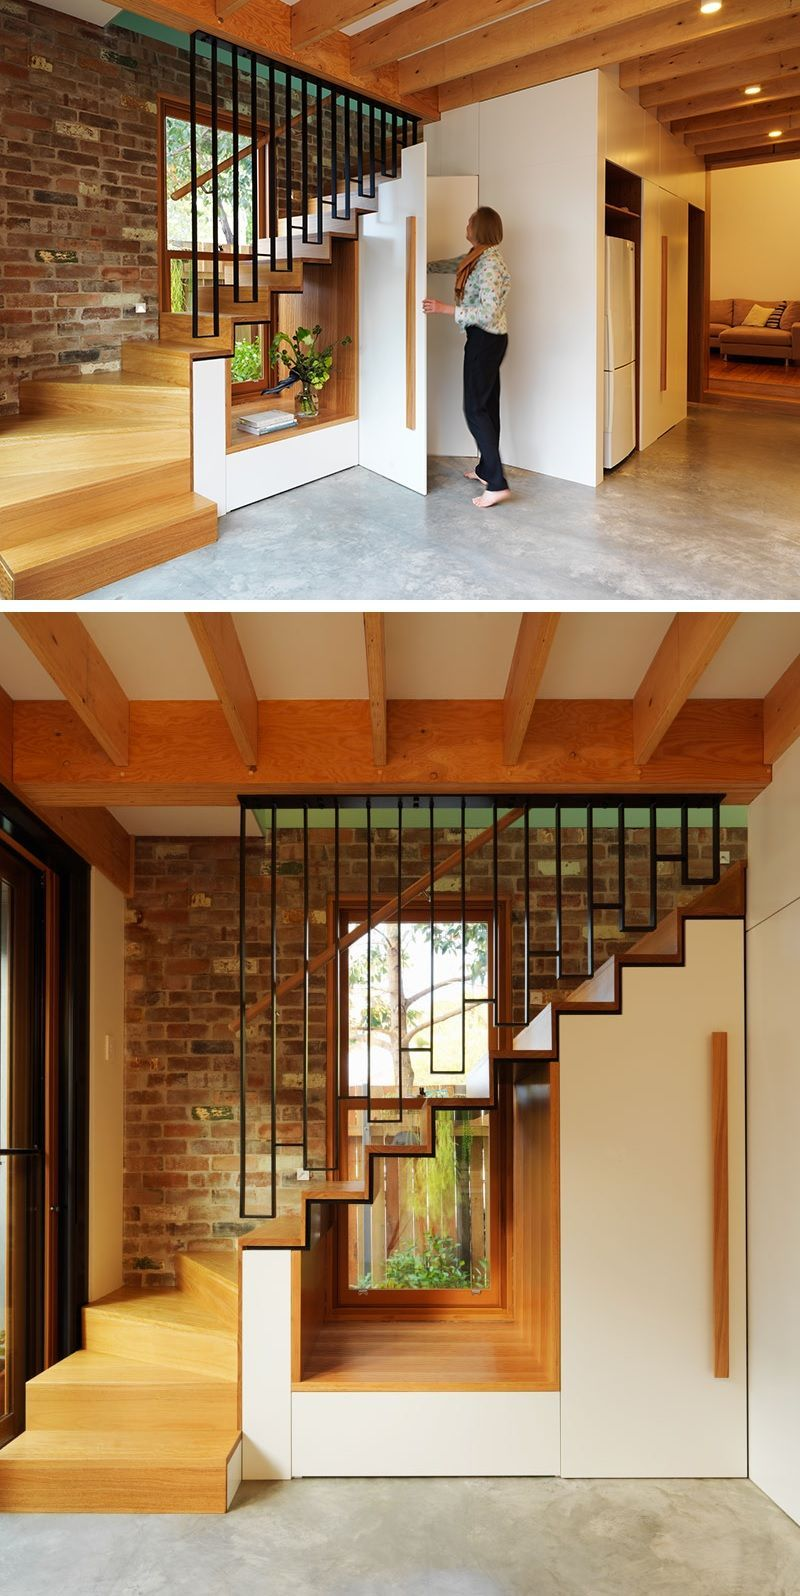 Staircase with window design – Home Decorating Trends – Homedit